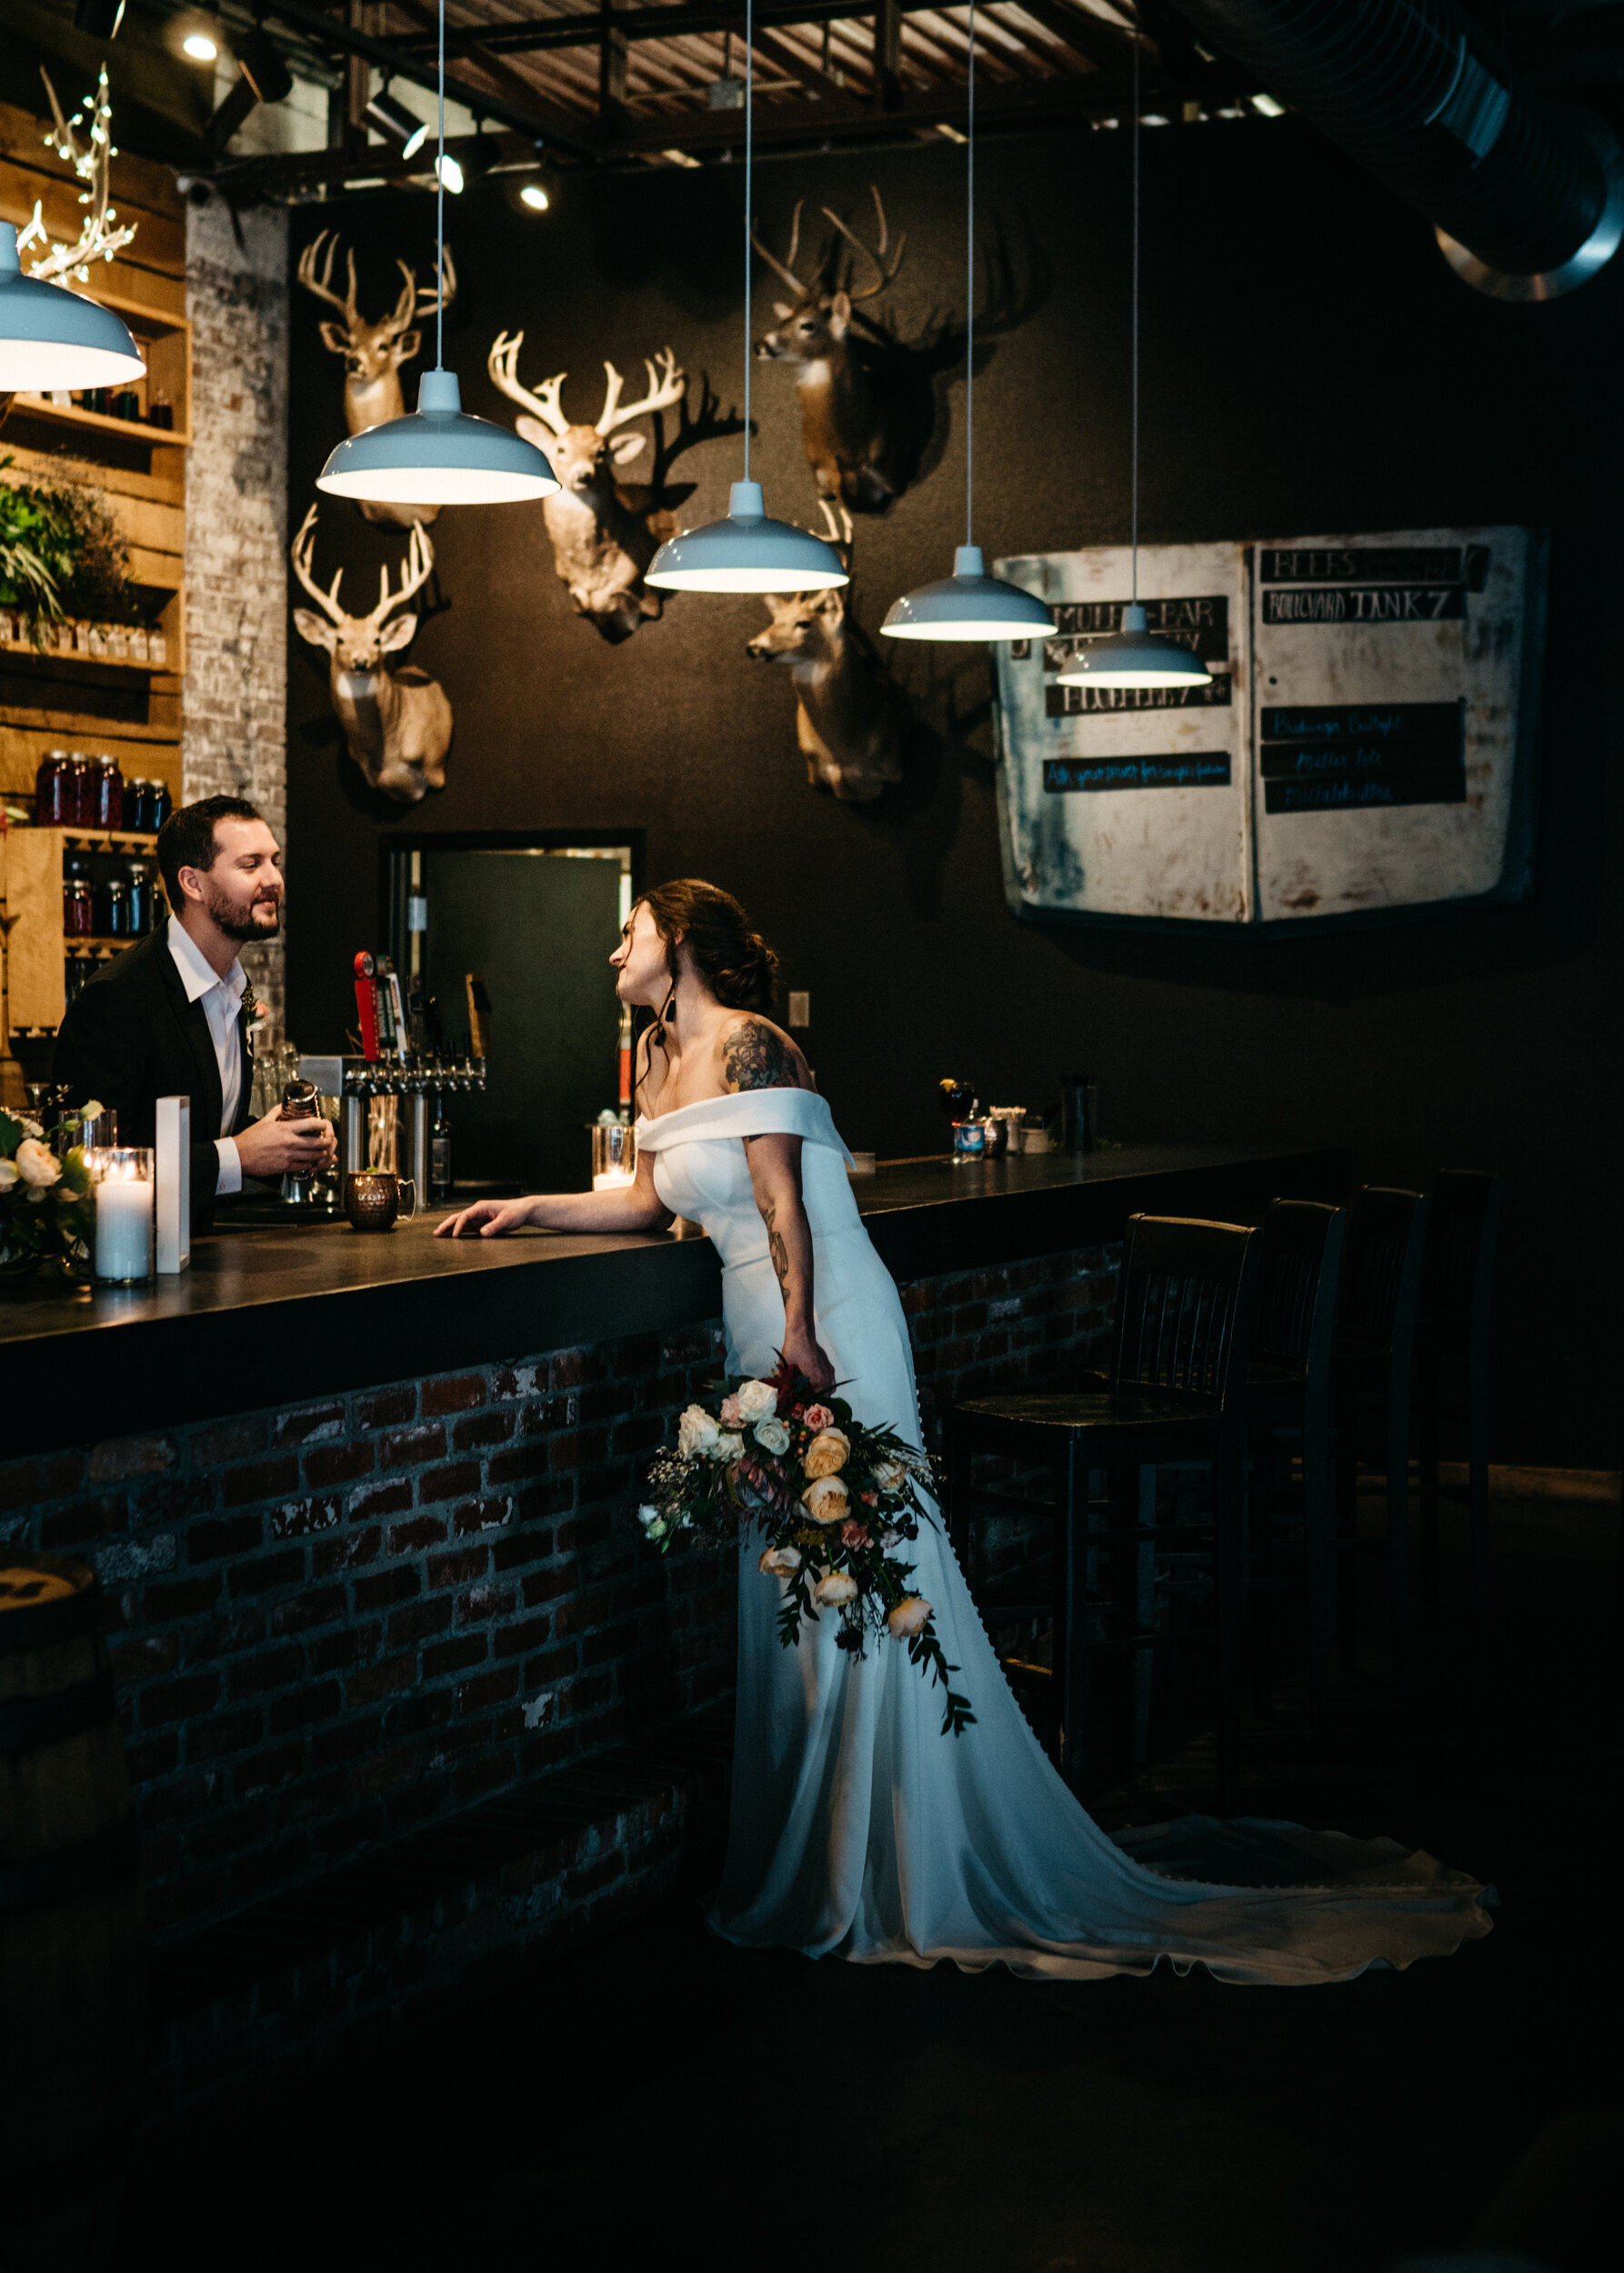 Groom makes his bride a drink at the Missouri Spirits Bar during their moody, romantic wedding - Industrial Wedding Inspiration with Destination Wedding Planner Unions With Celia and Sean Reid Photography